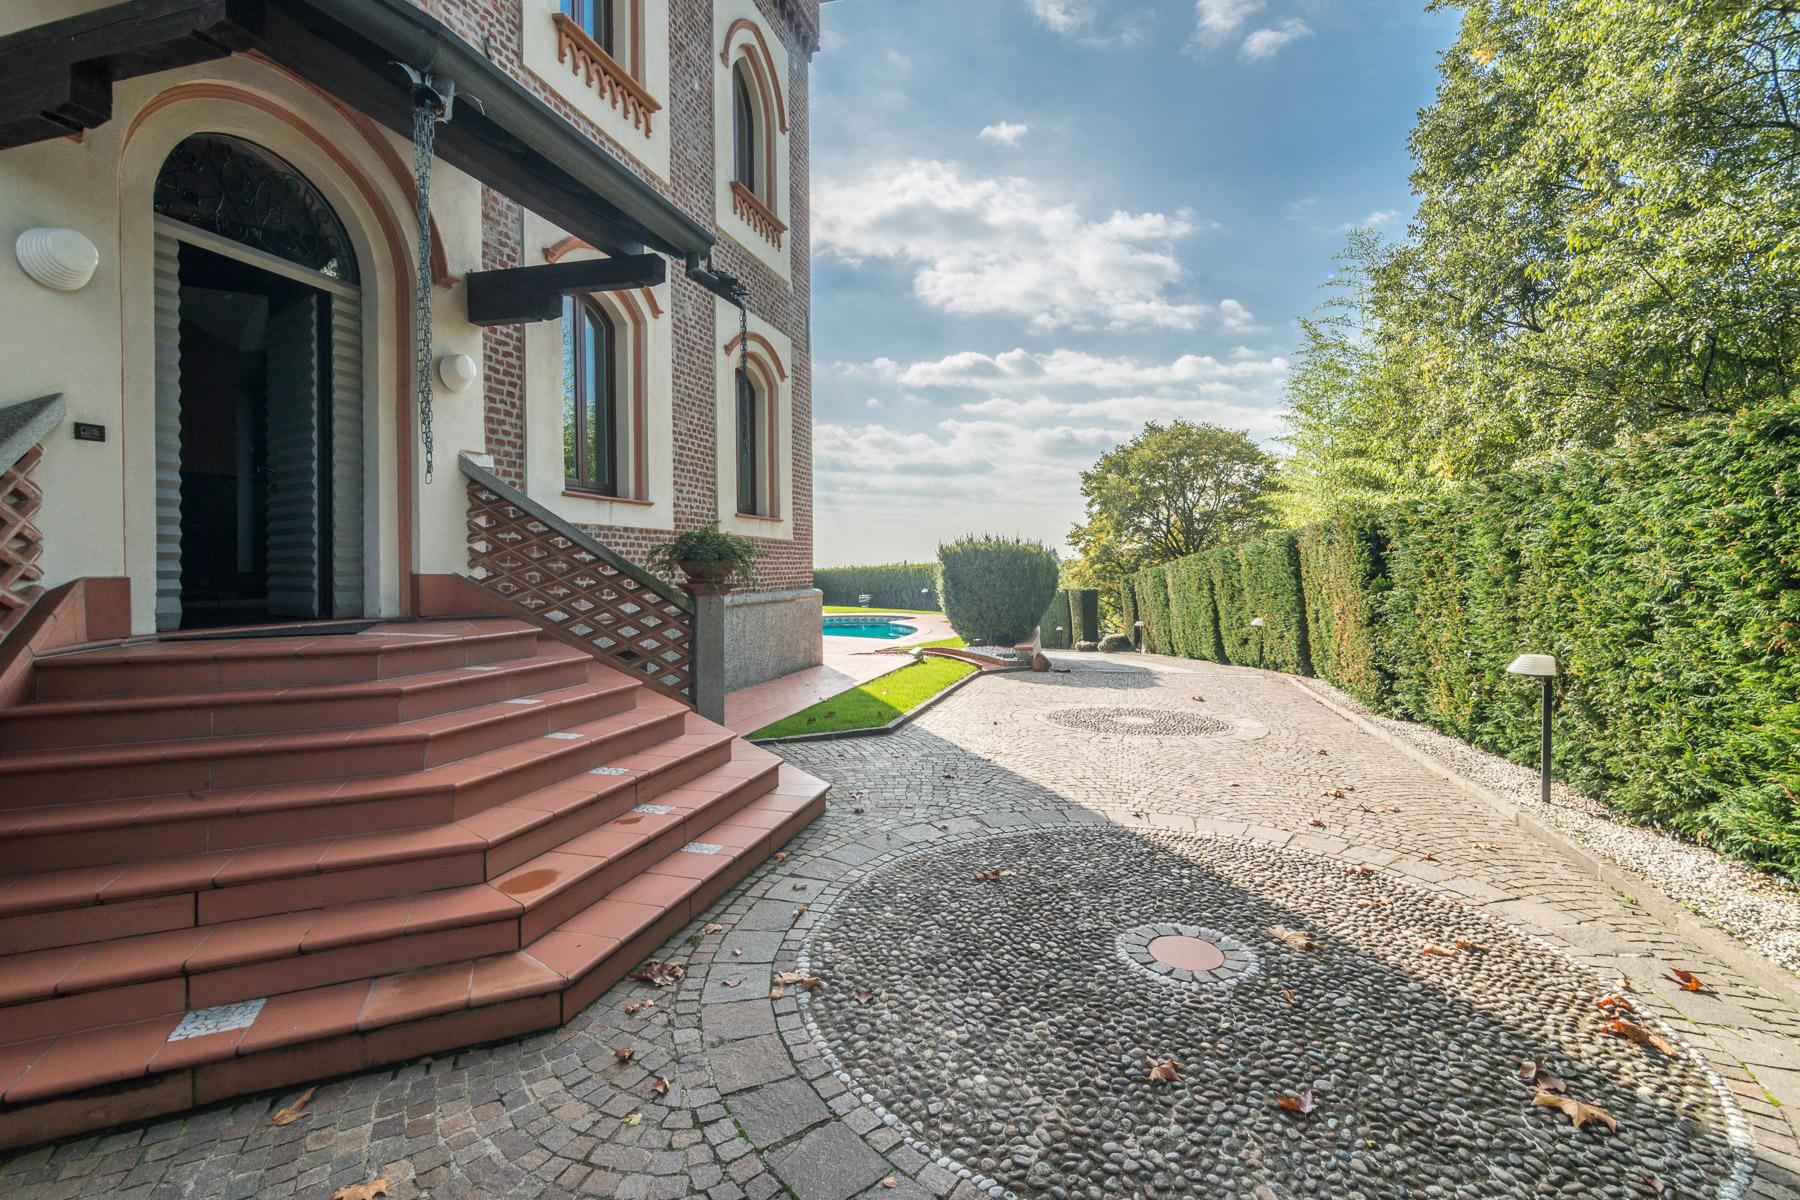 Pretigious historical villa close to Milan - 4